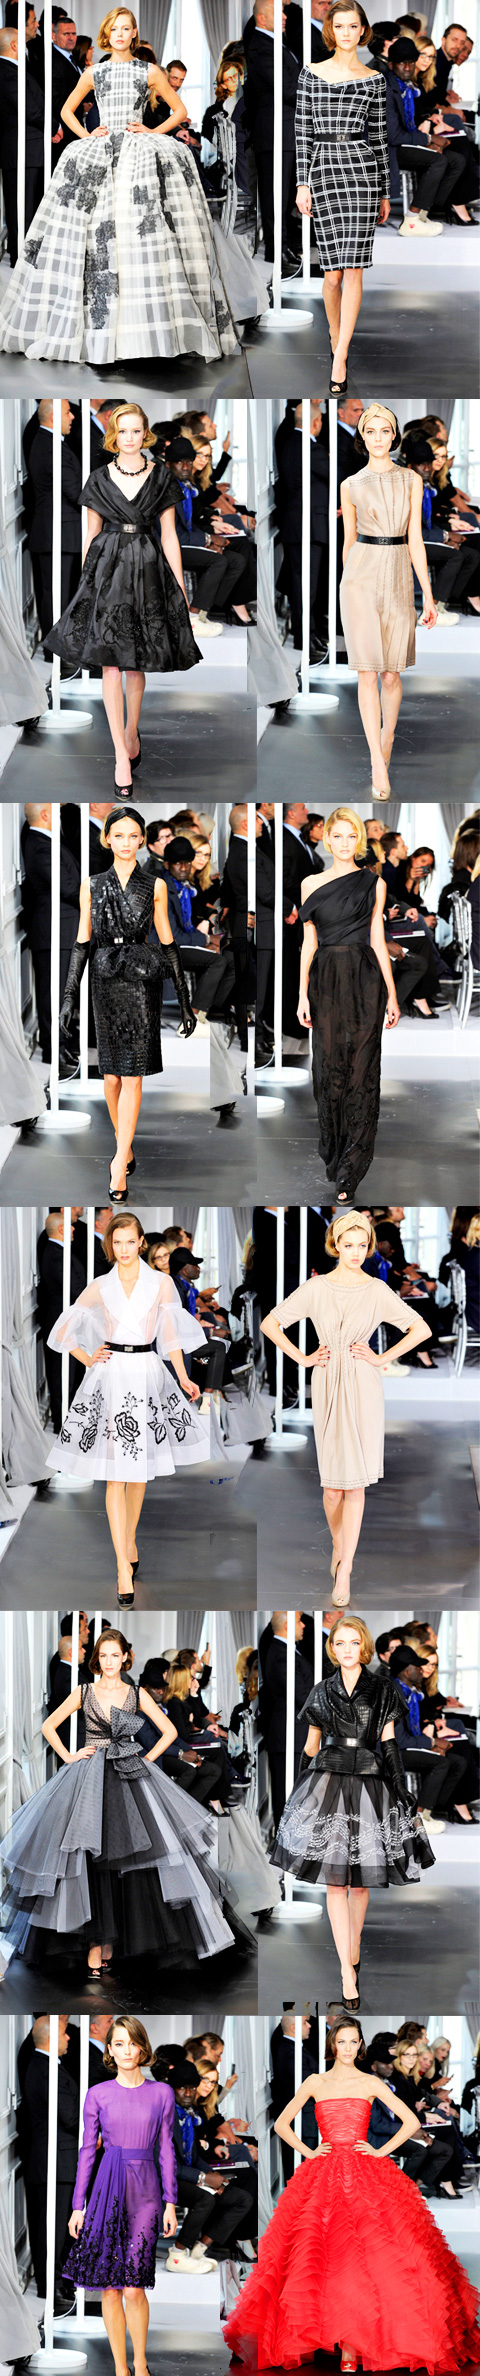 Friday Fashion Break: Christian Dior Spring 2012 Couture